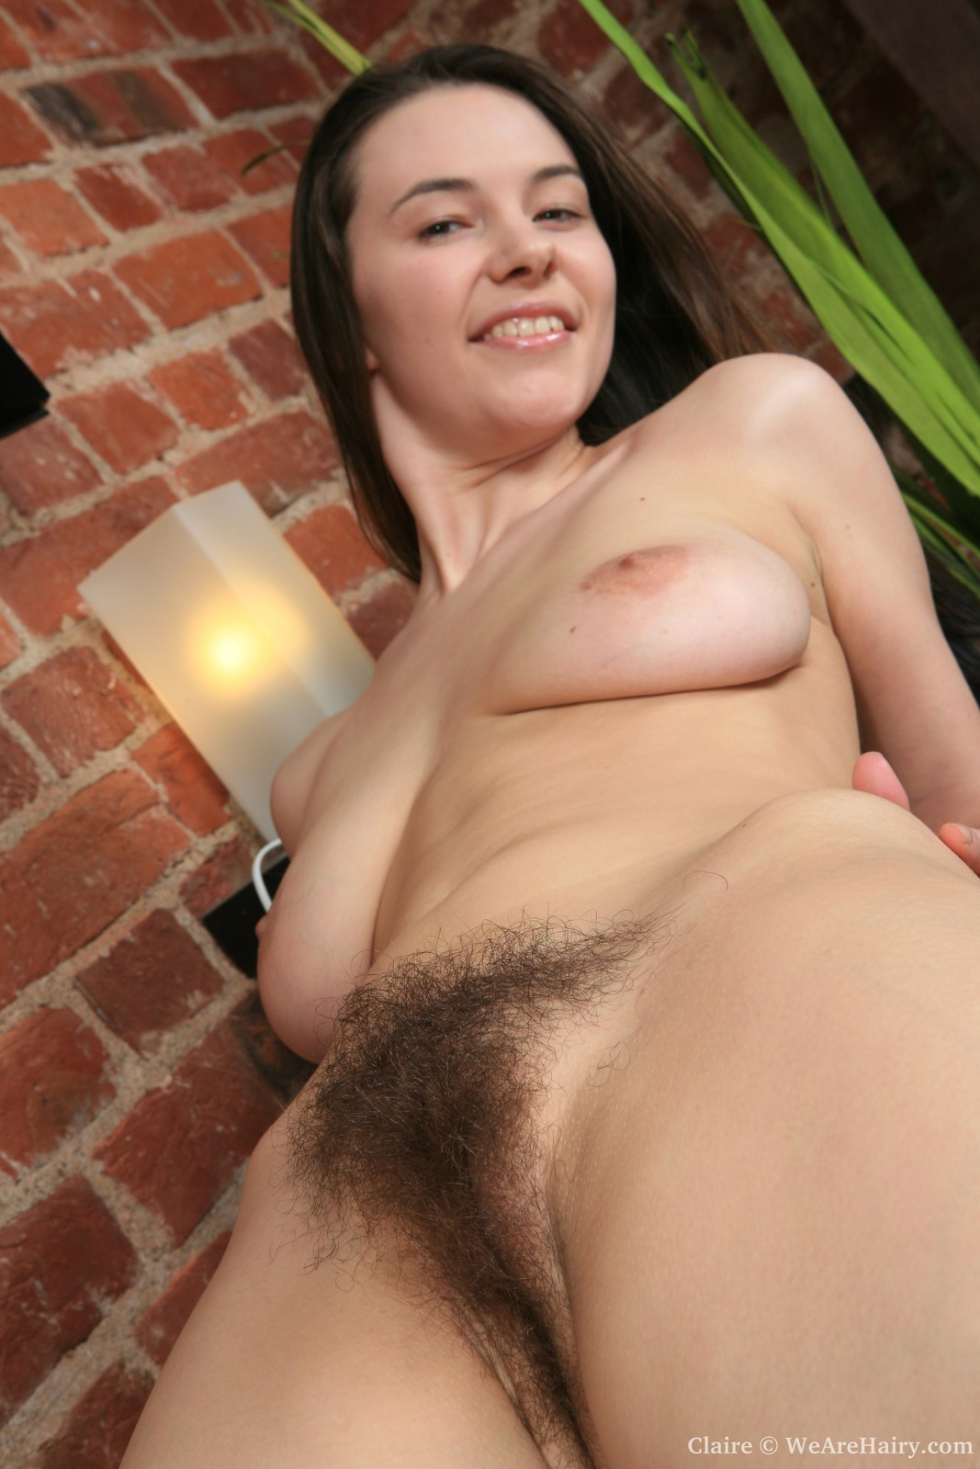 WeAreHairyFREE.com | 4 Updates Every Day | Exclusive HD Movies ...